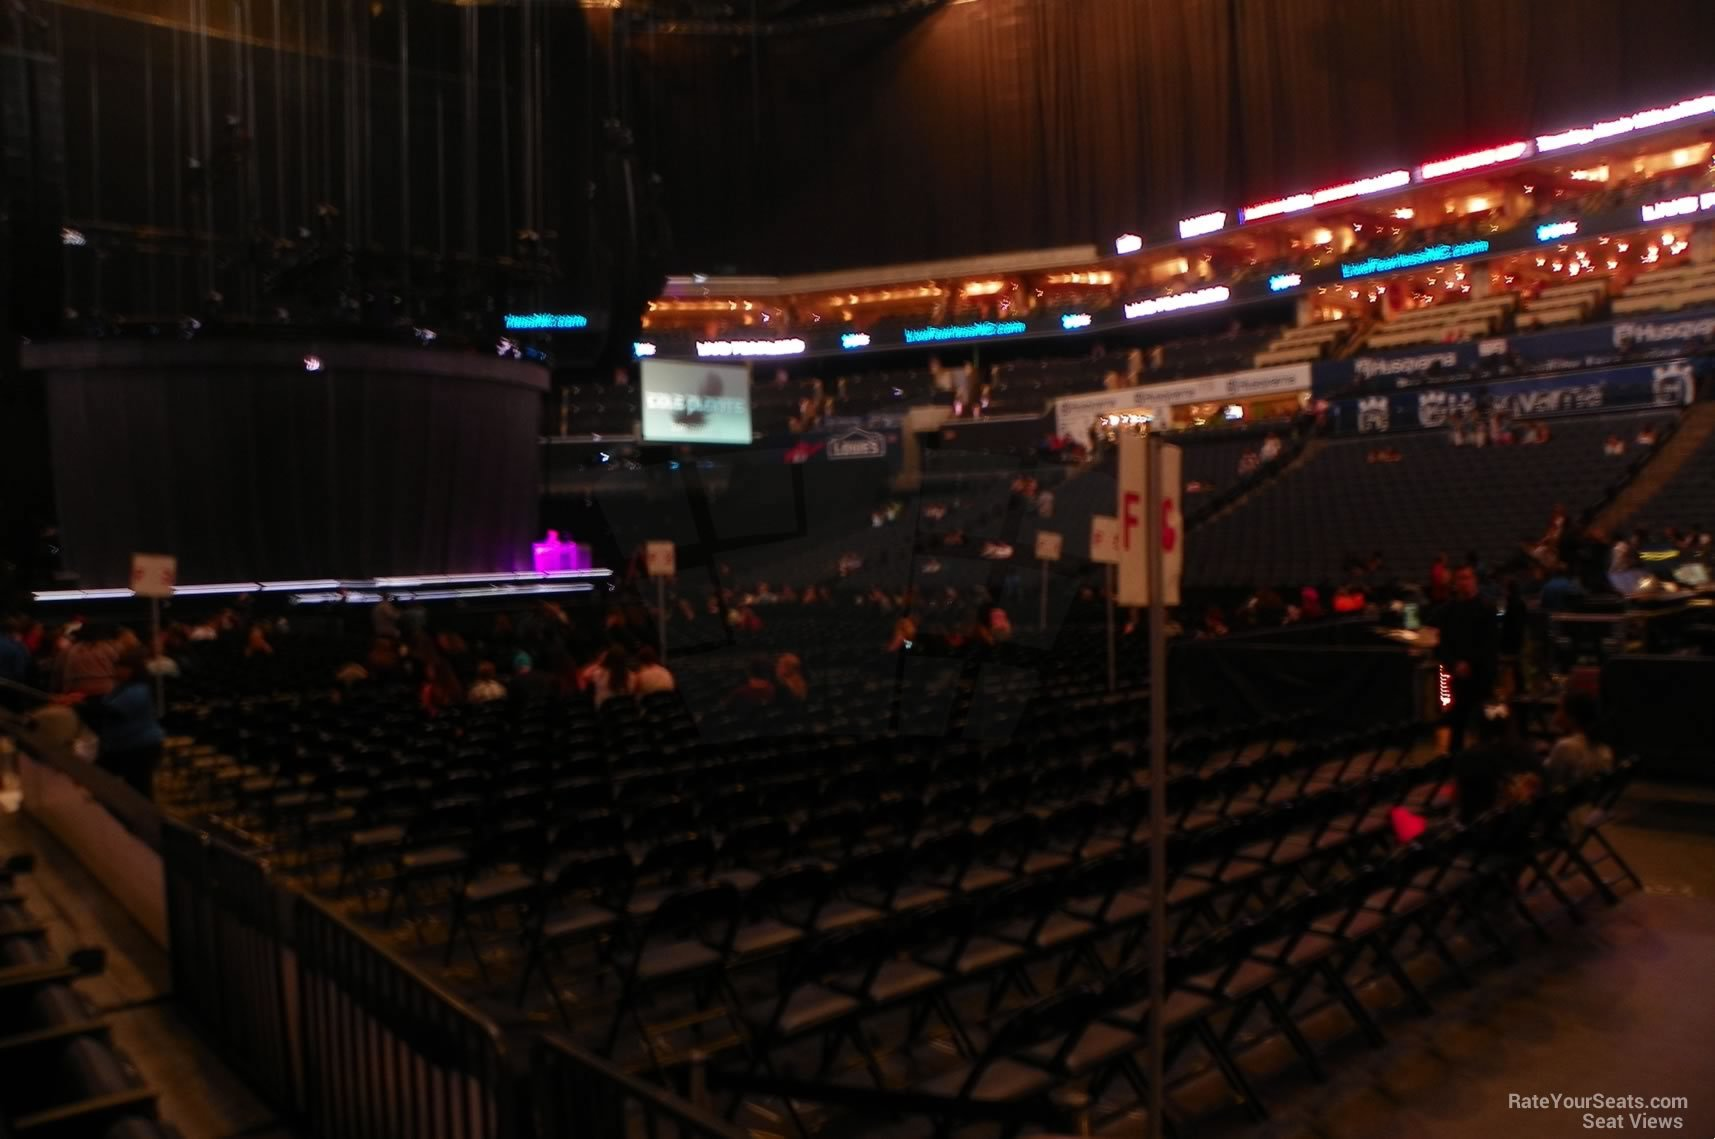 Section 104 seat view